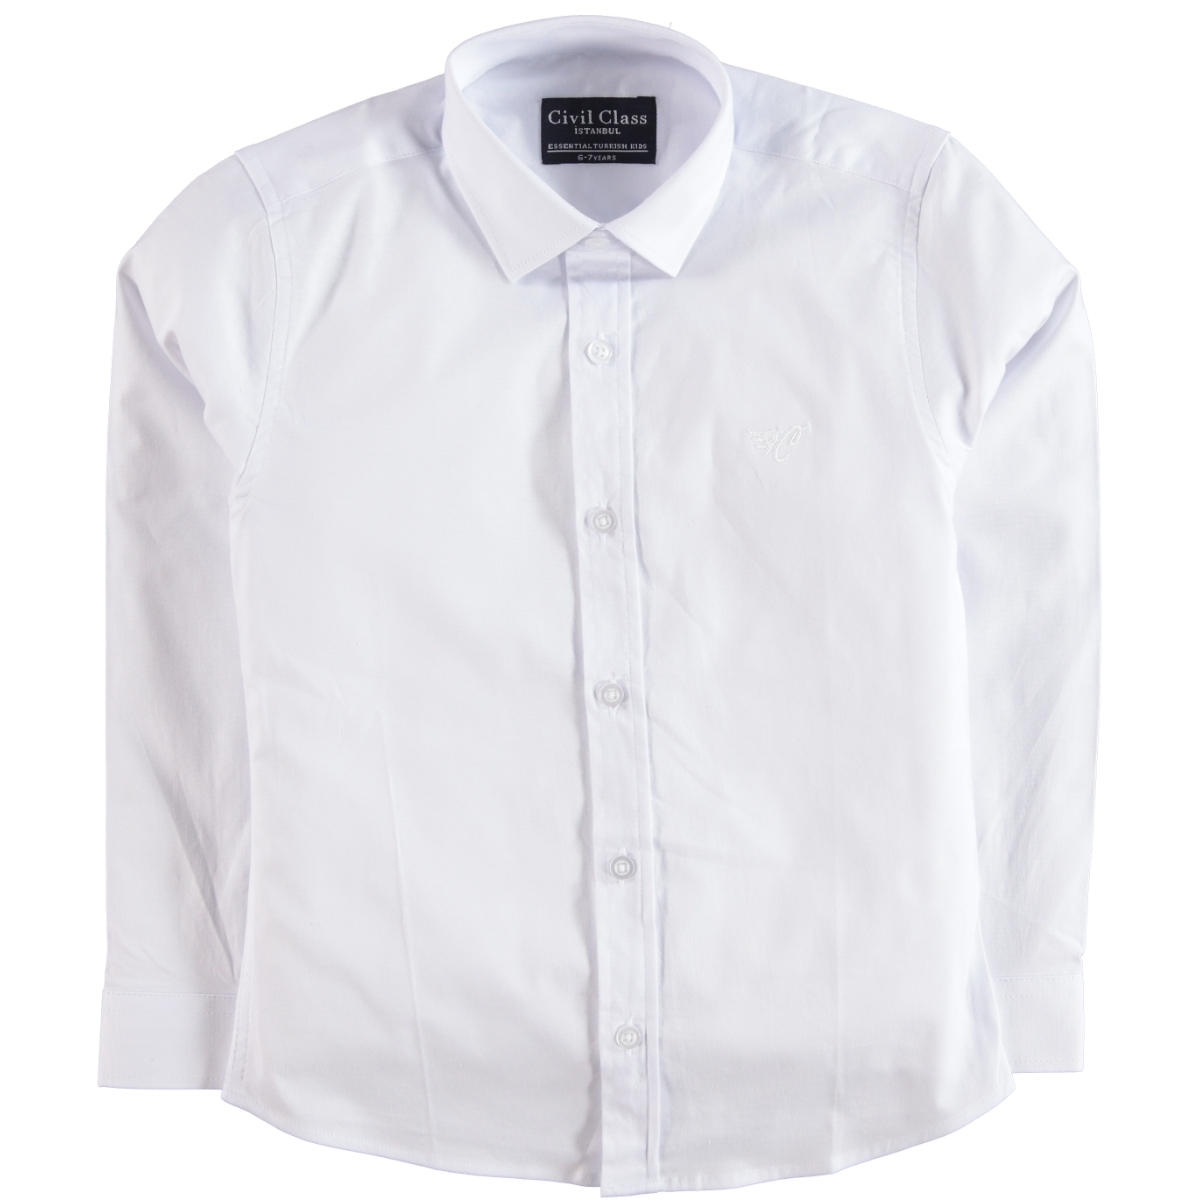 Civil Class White Shirt Boy The Ages Of 10-13